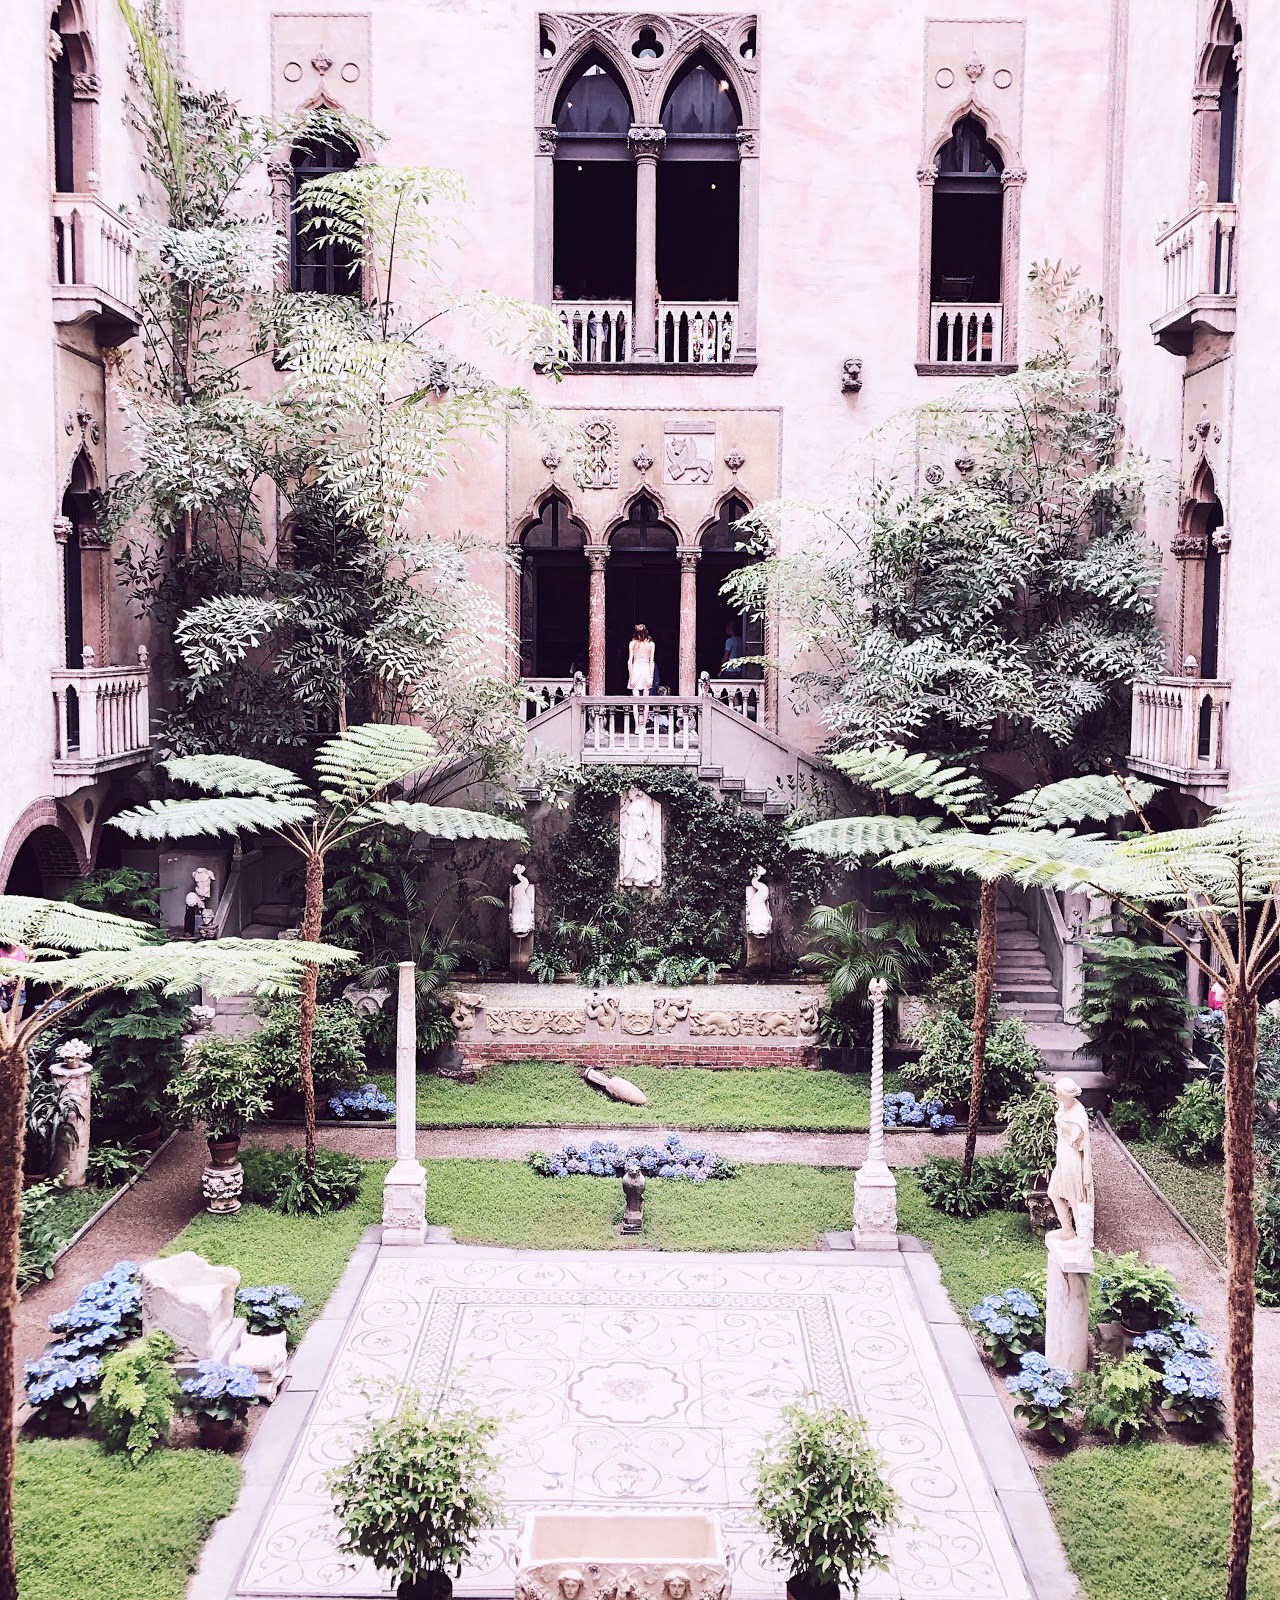 Boston Travel Vlog, isabella stewart gardner museum, what to do in Boston, Boston Travel Guide, boston beautiful homes, instagrammable spots, commonwealth ave, boston blogger